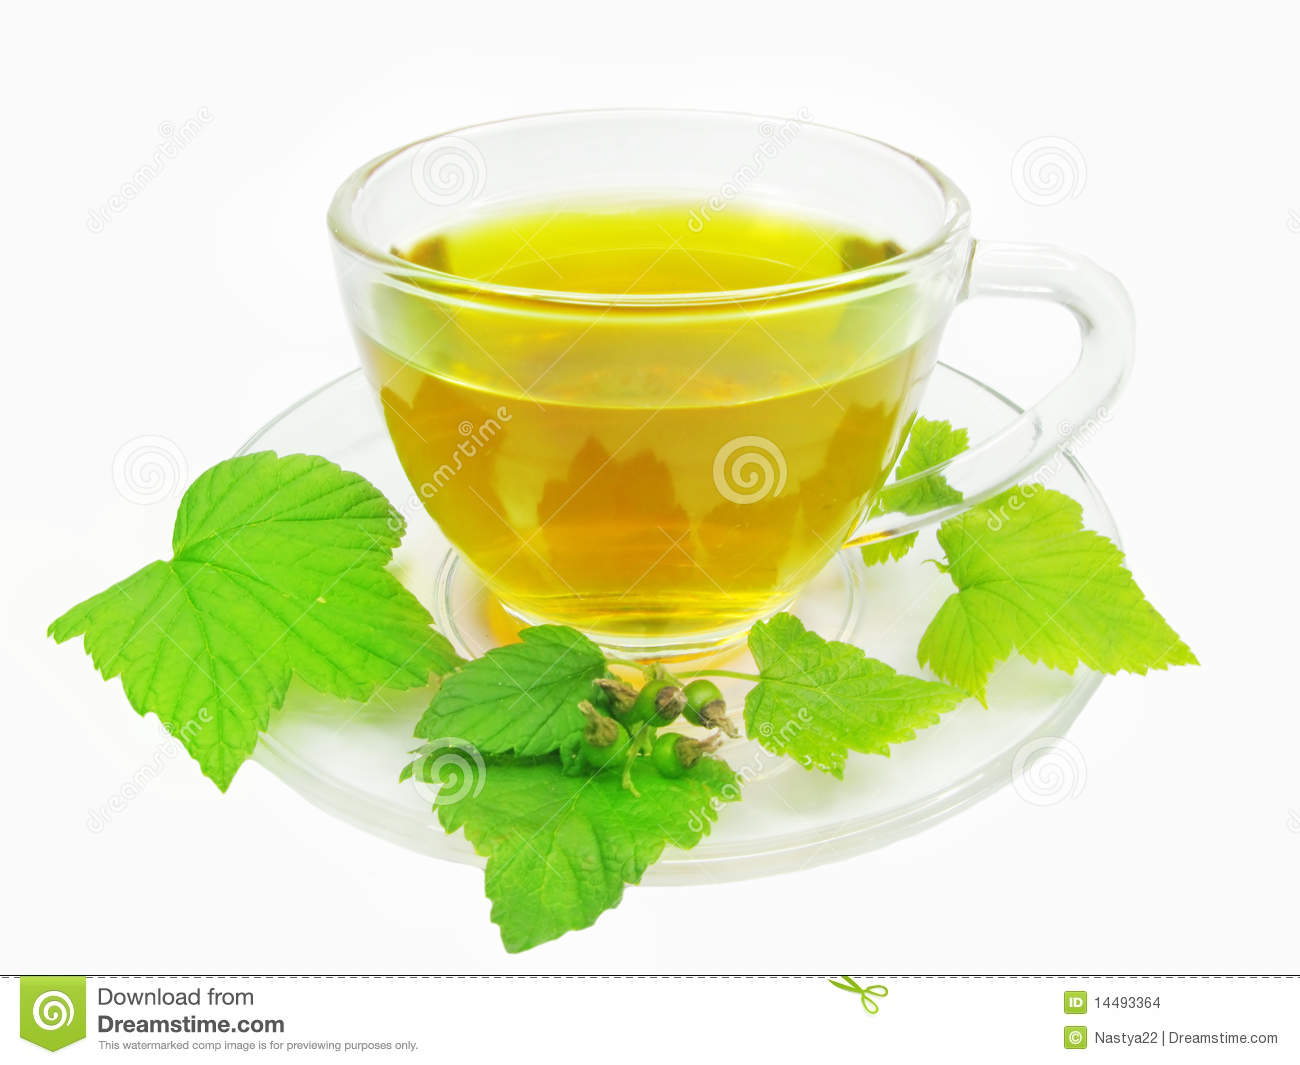 Is green tea a herbal tea